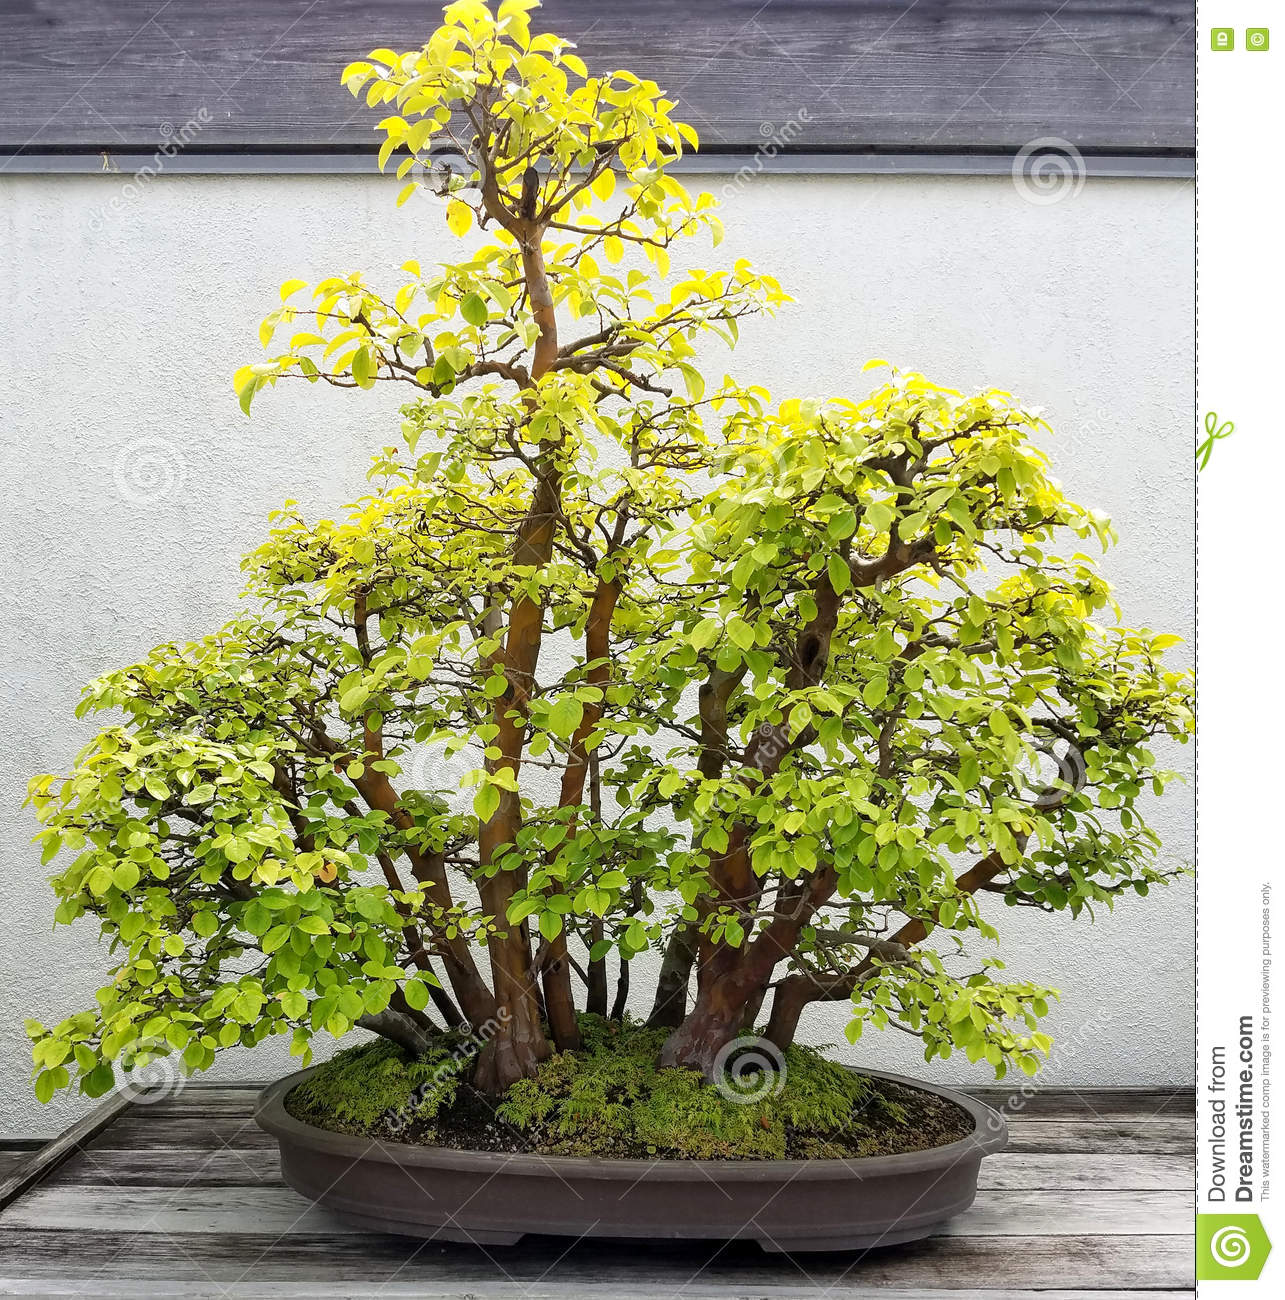 Bonsai Quitte Stockbild Bild Von Quitte Bonsai 82304485